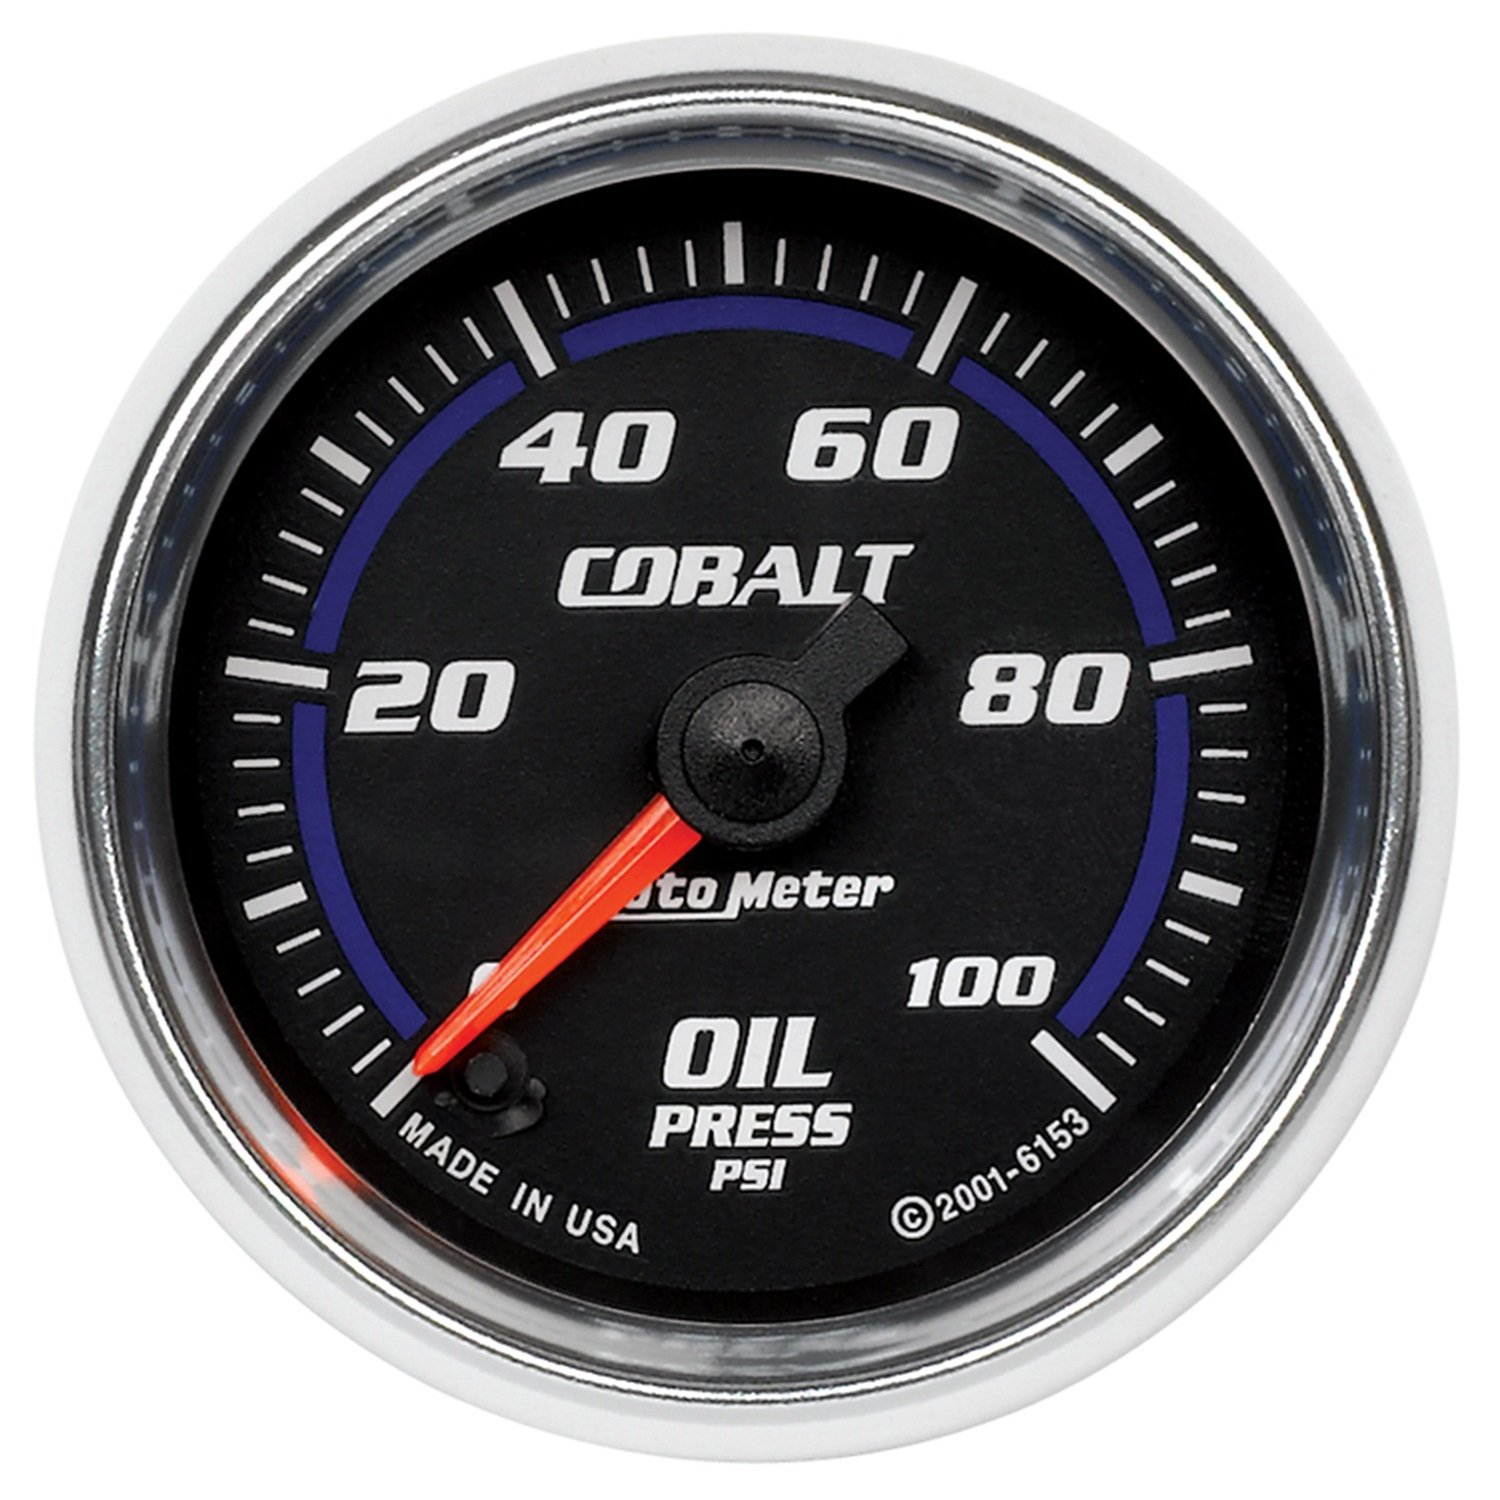 Auto Meter 6153 Cobalt 2-1/16'' 0-100 PSI Full Sweep Electric Oil Pressure Gauge by AUTO METER